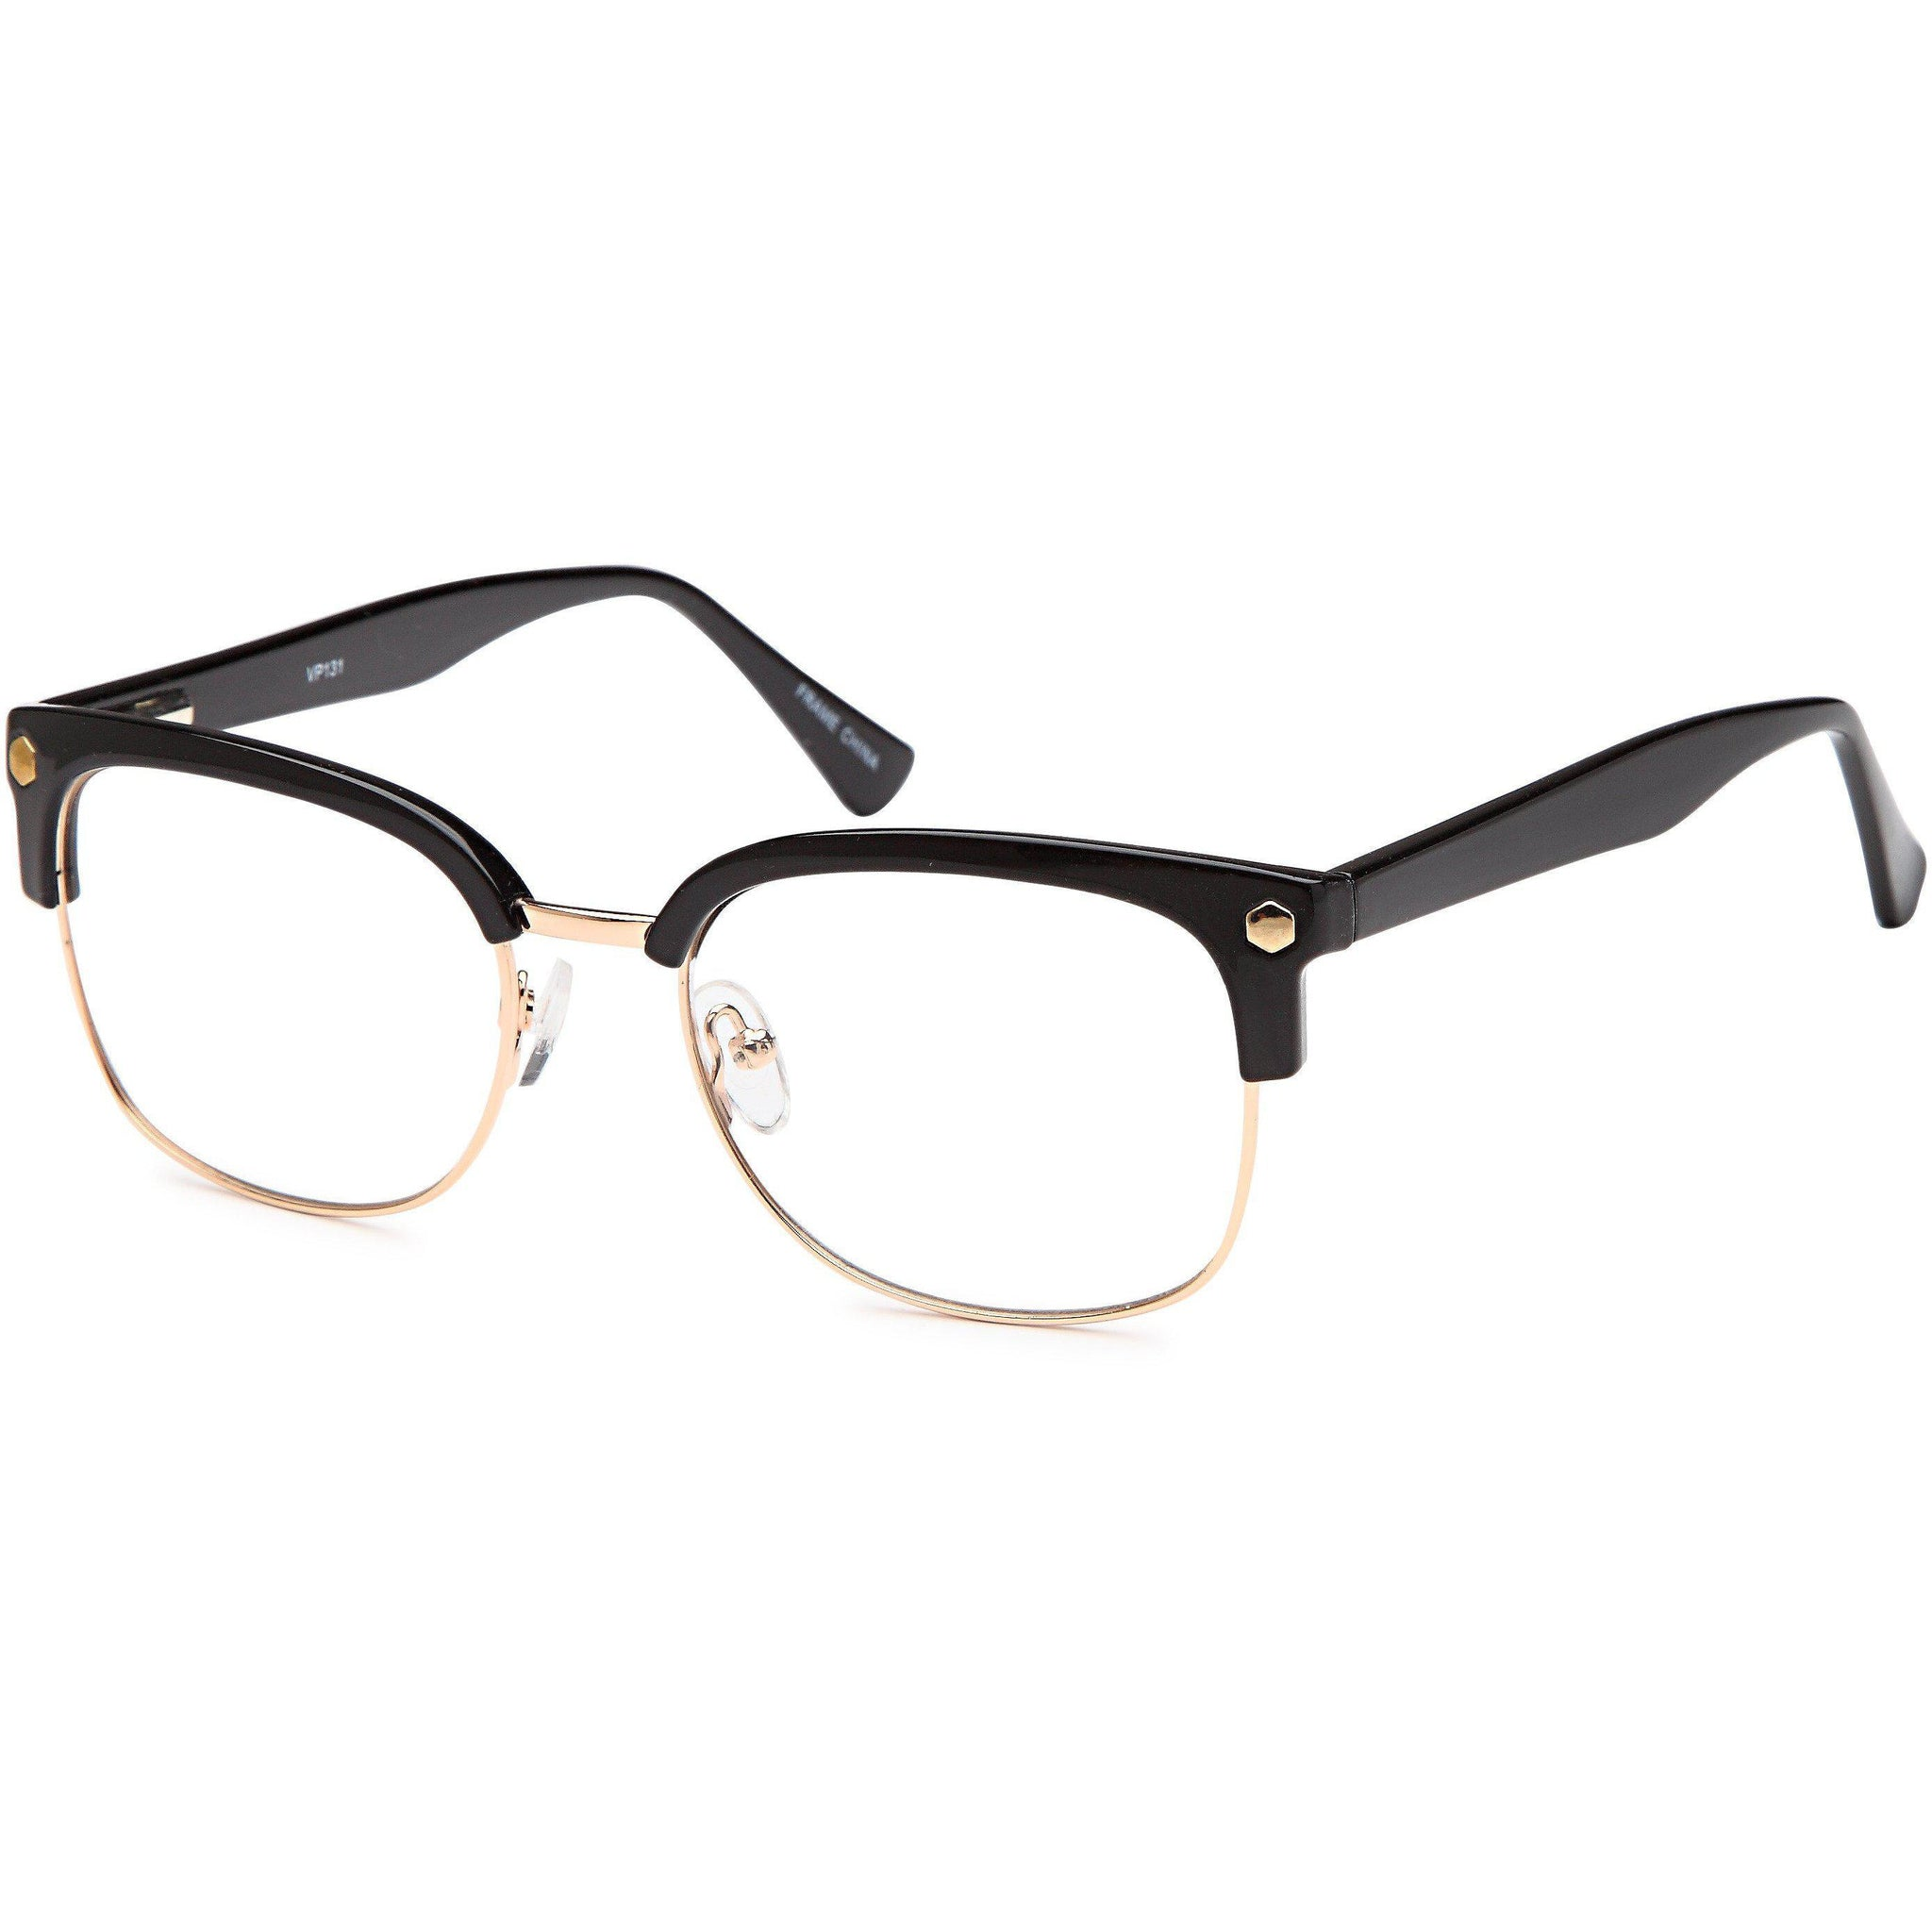 The Icons Prescription Glasses VP 131 Eyeglasses Frame